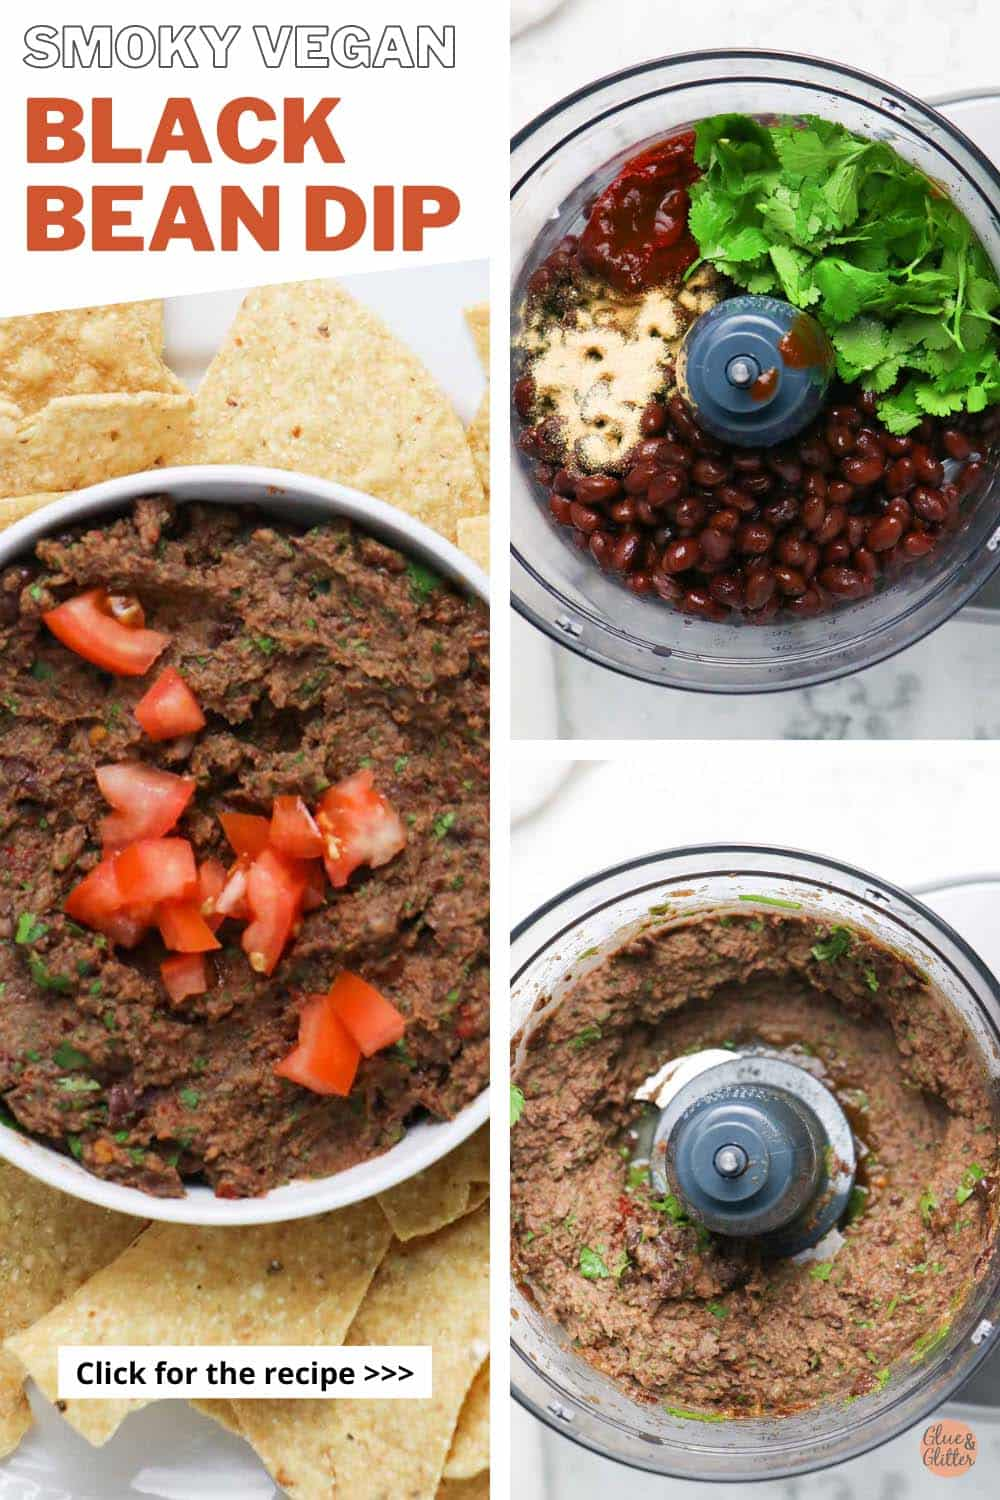 image collage of the black bean dip showing the ingredients in the food processor before and after running it